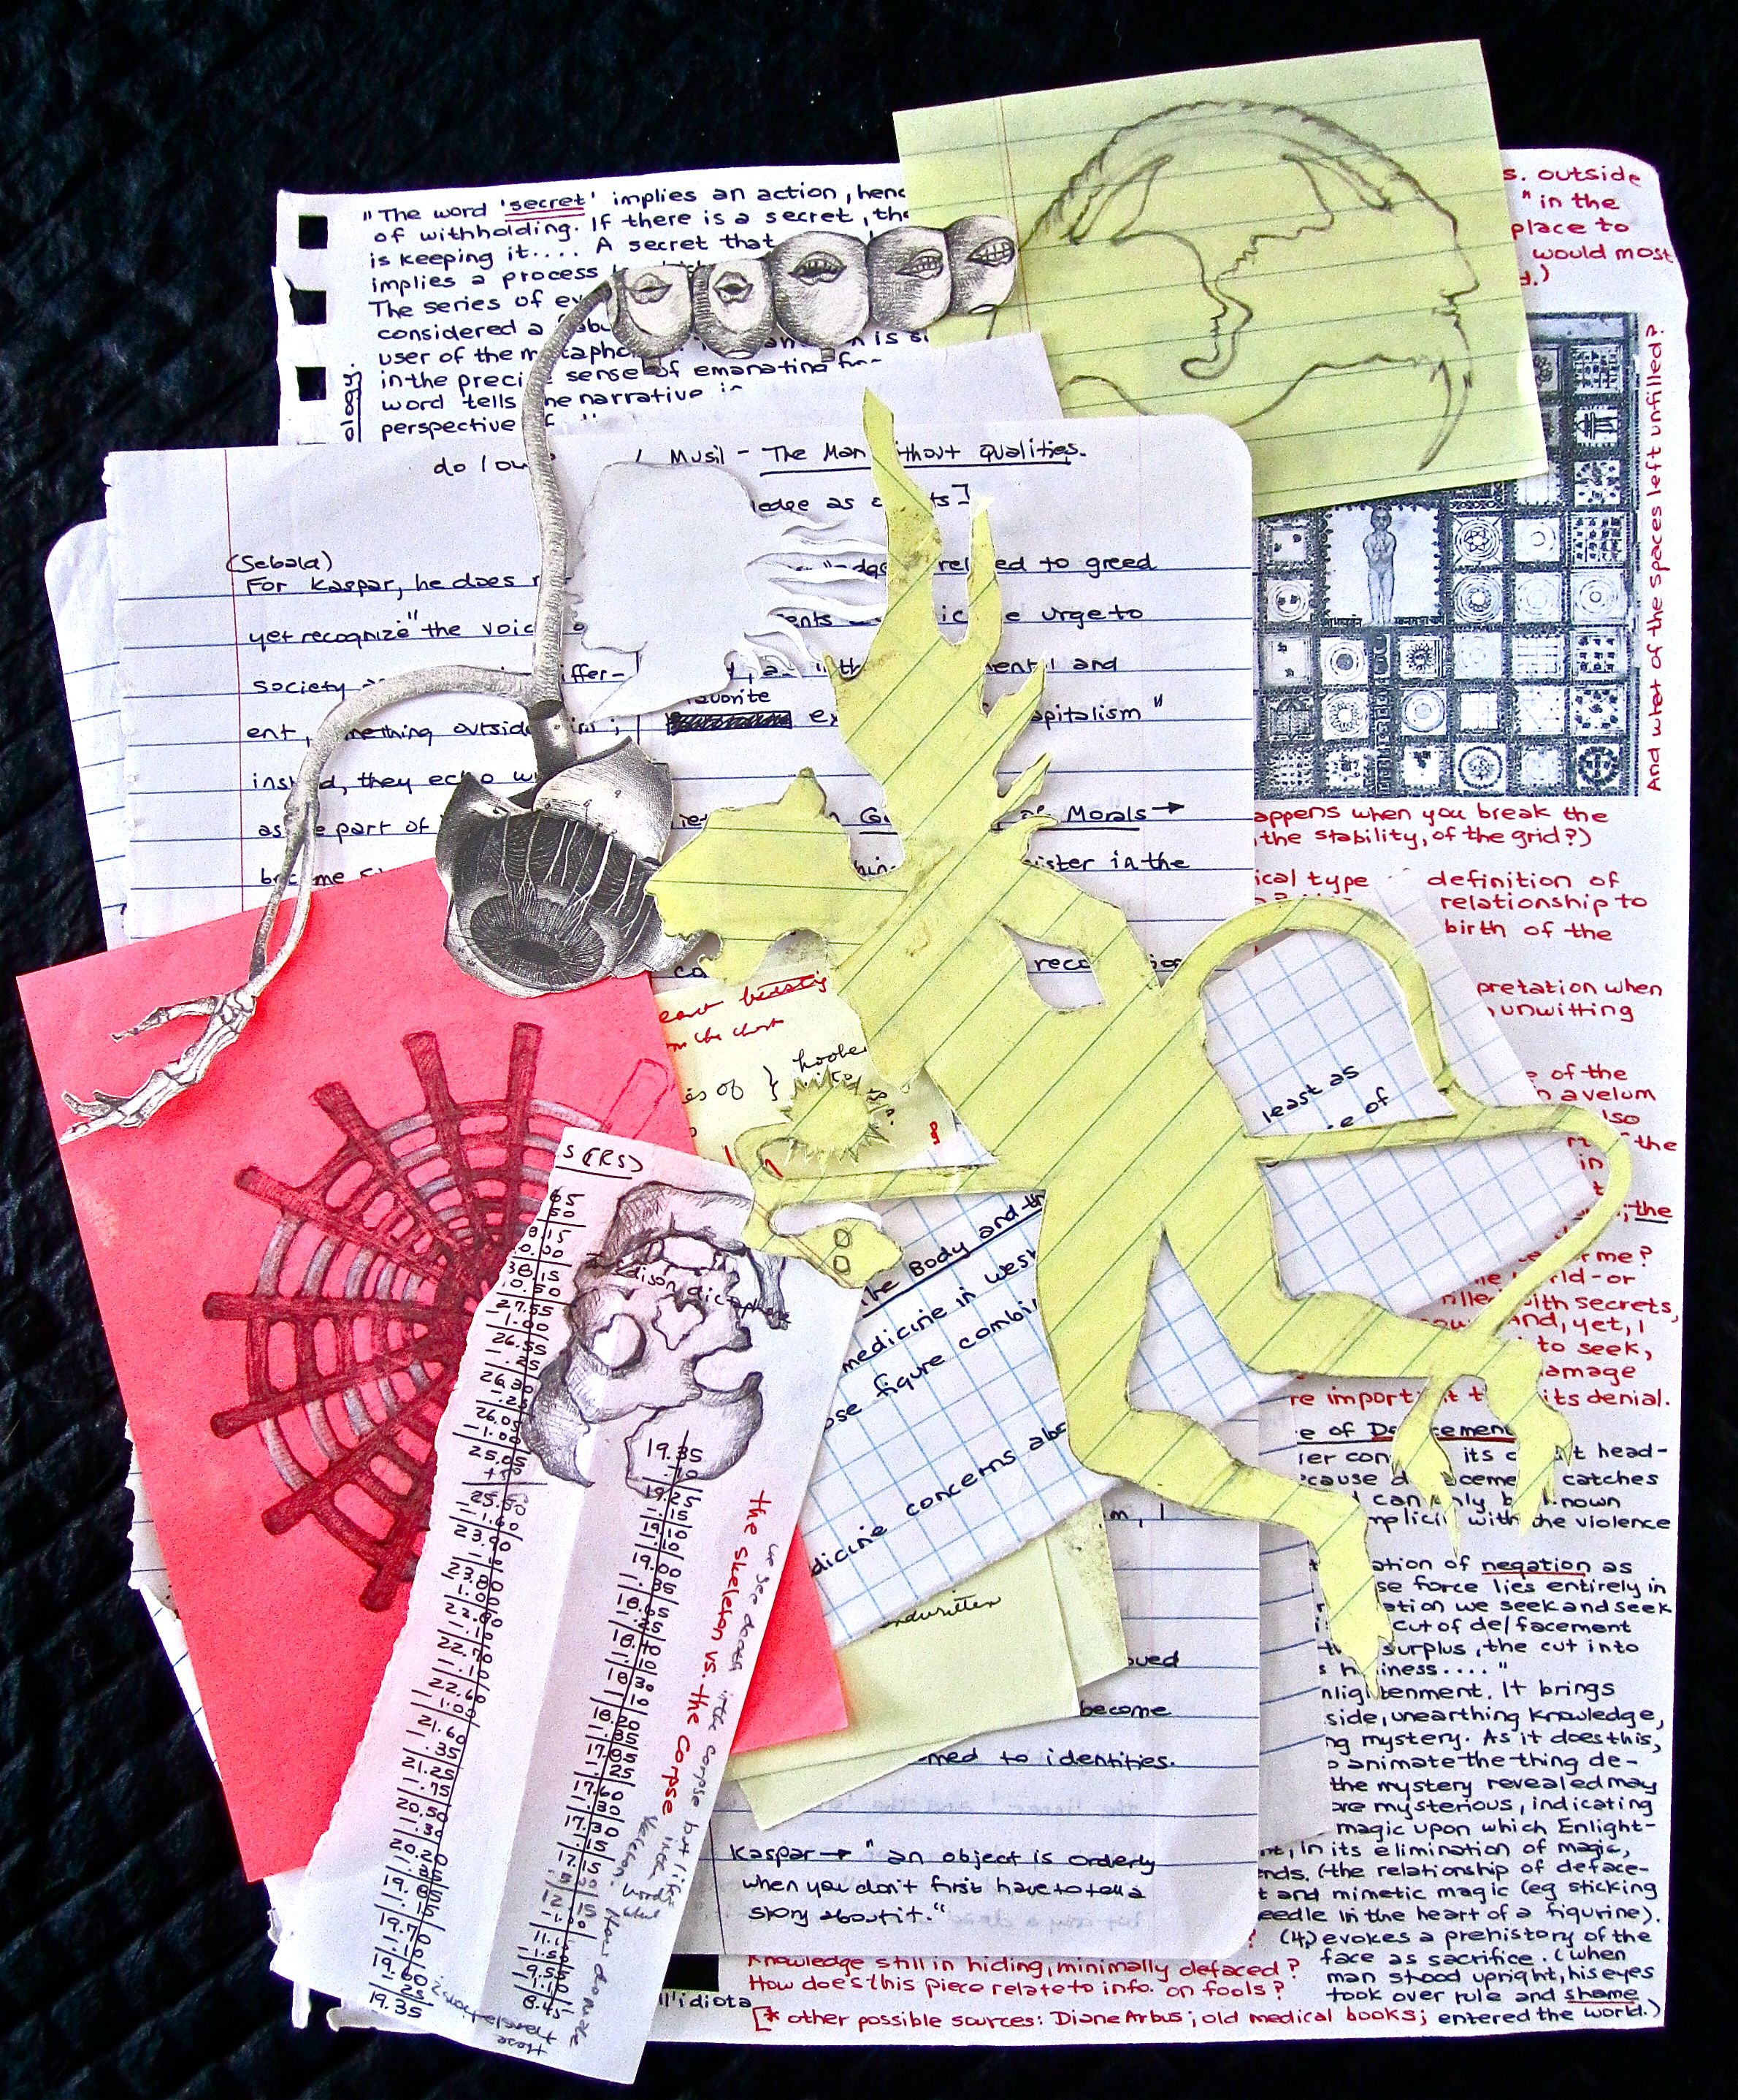 Laura Stanziola, Scraps of drawings and words, waiting for a journal page.